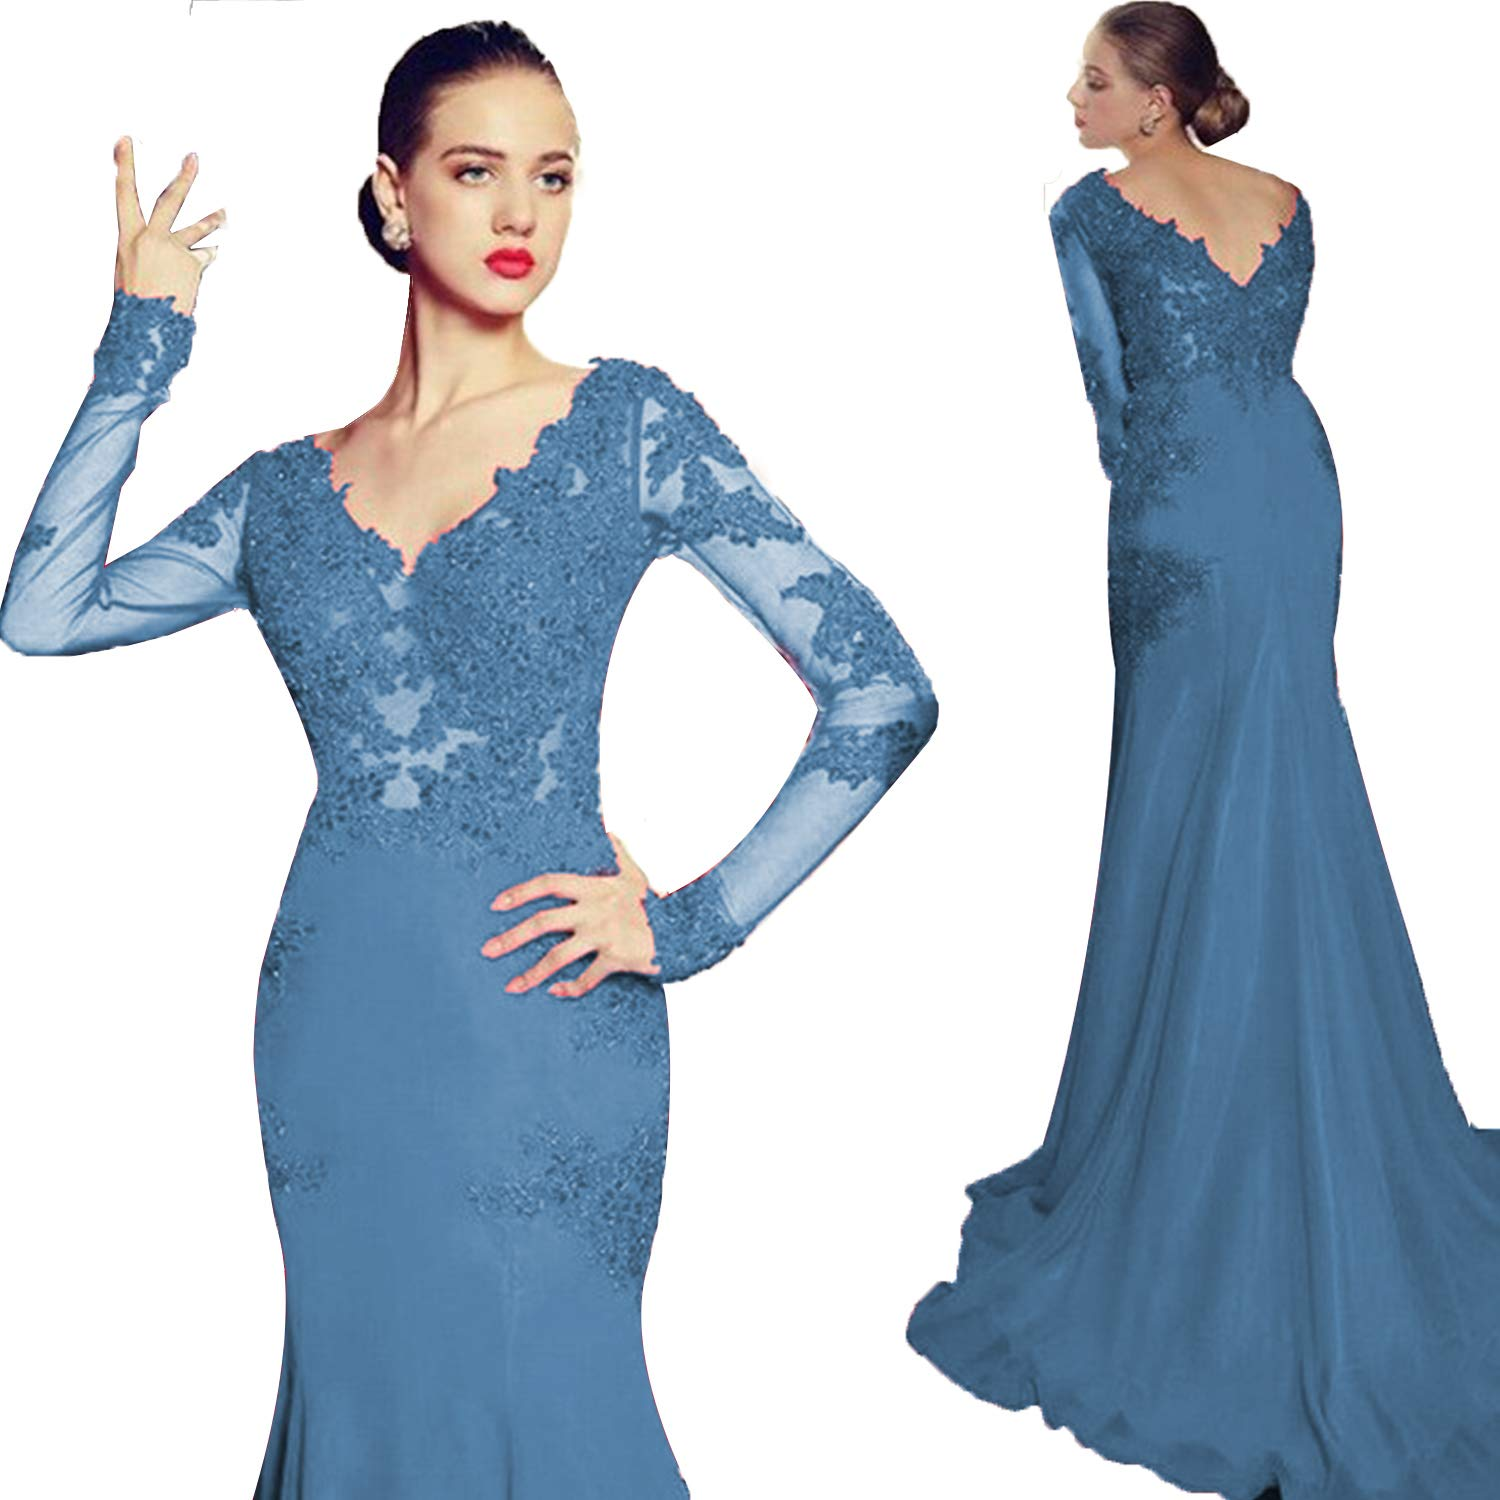 bluee Promworld Women's Double V Neck Lace Applique Mermaid Prom Dress Illusion Formal Evening Gown with Sleeve with Sleeve